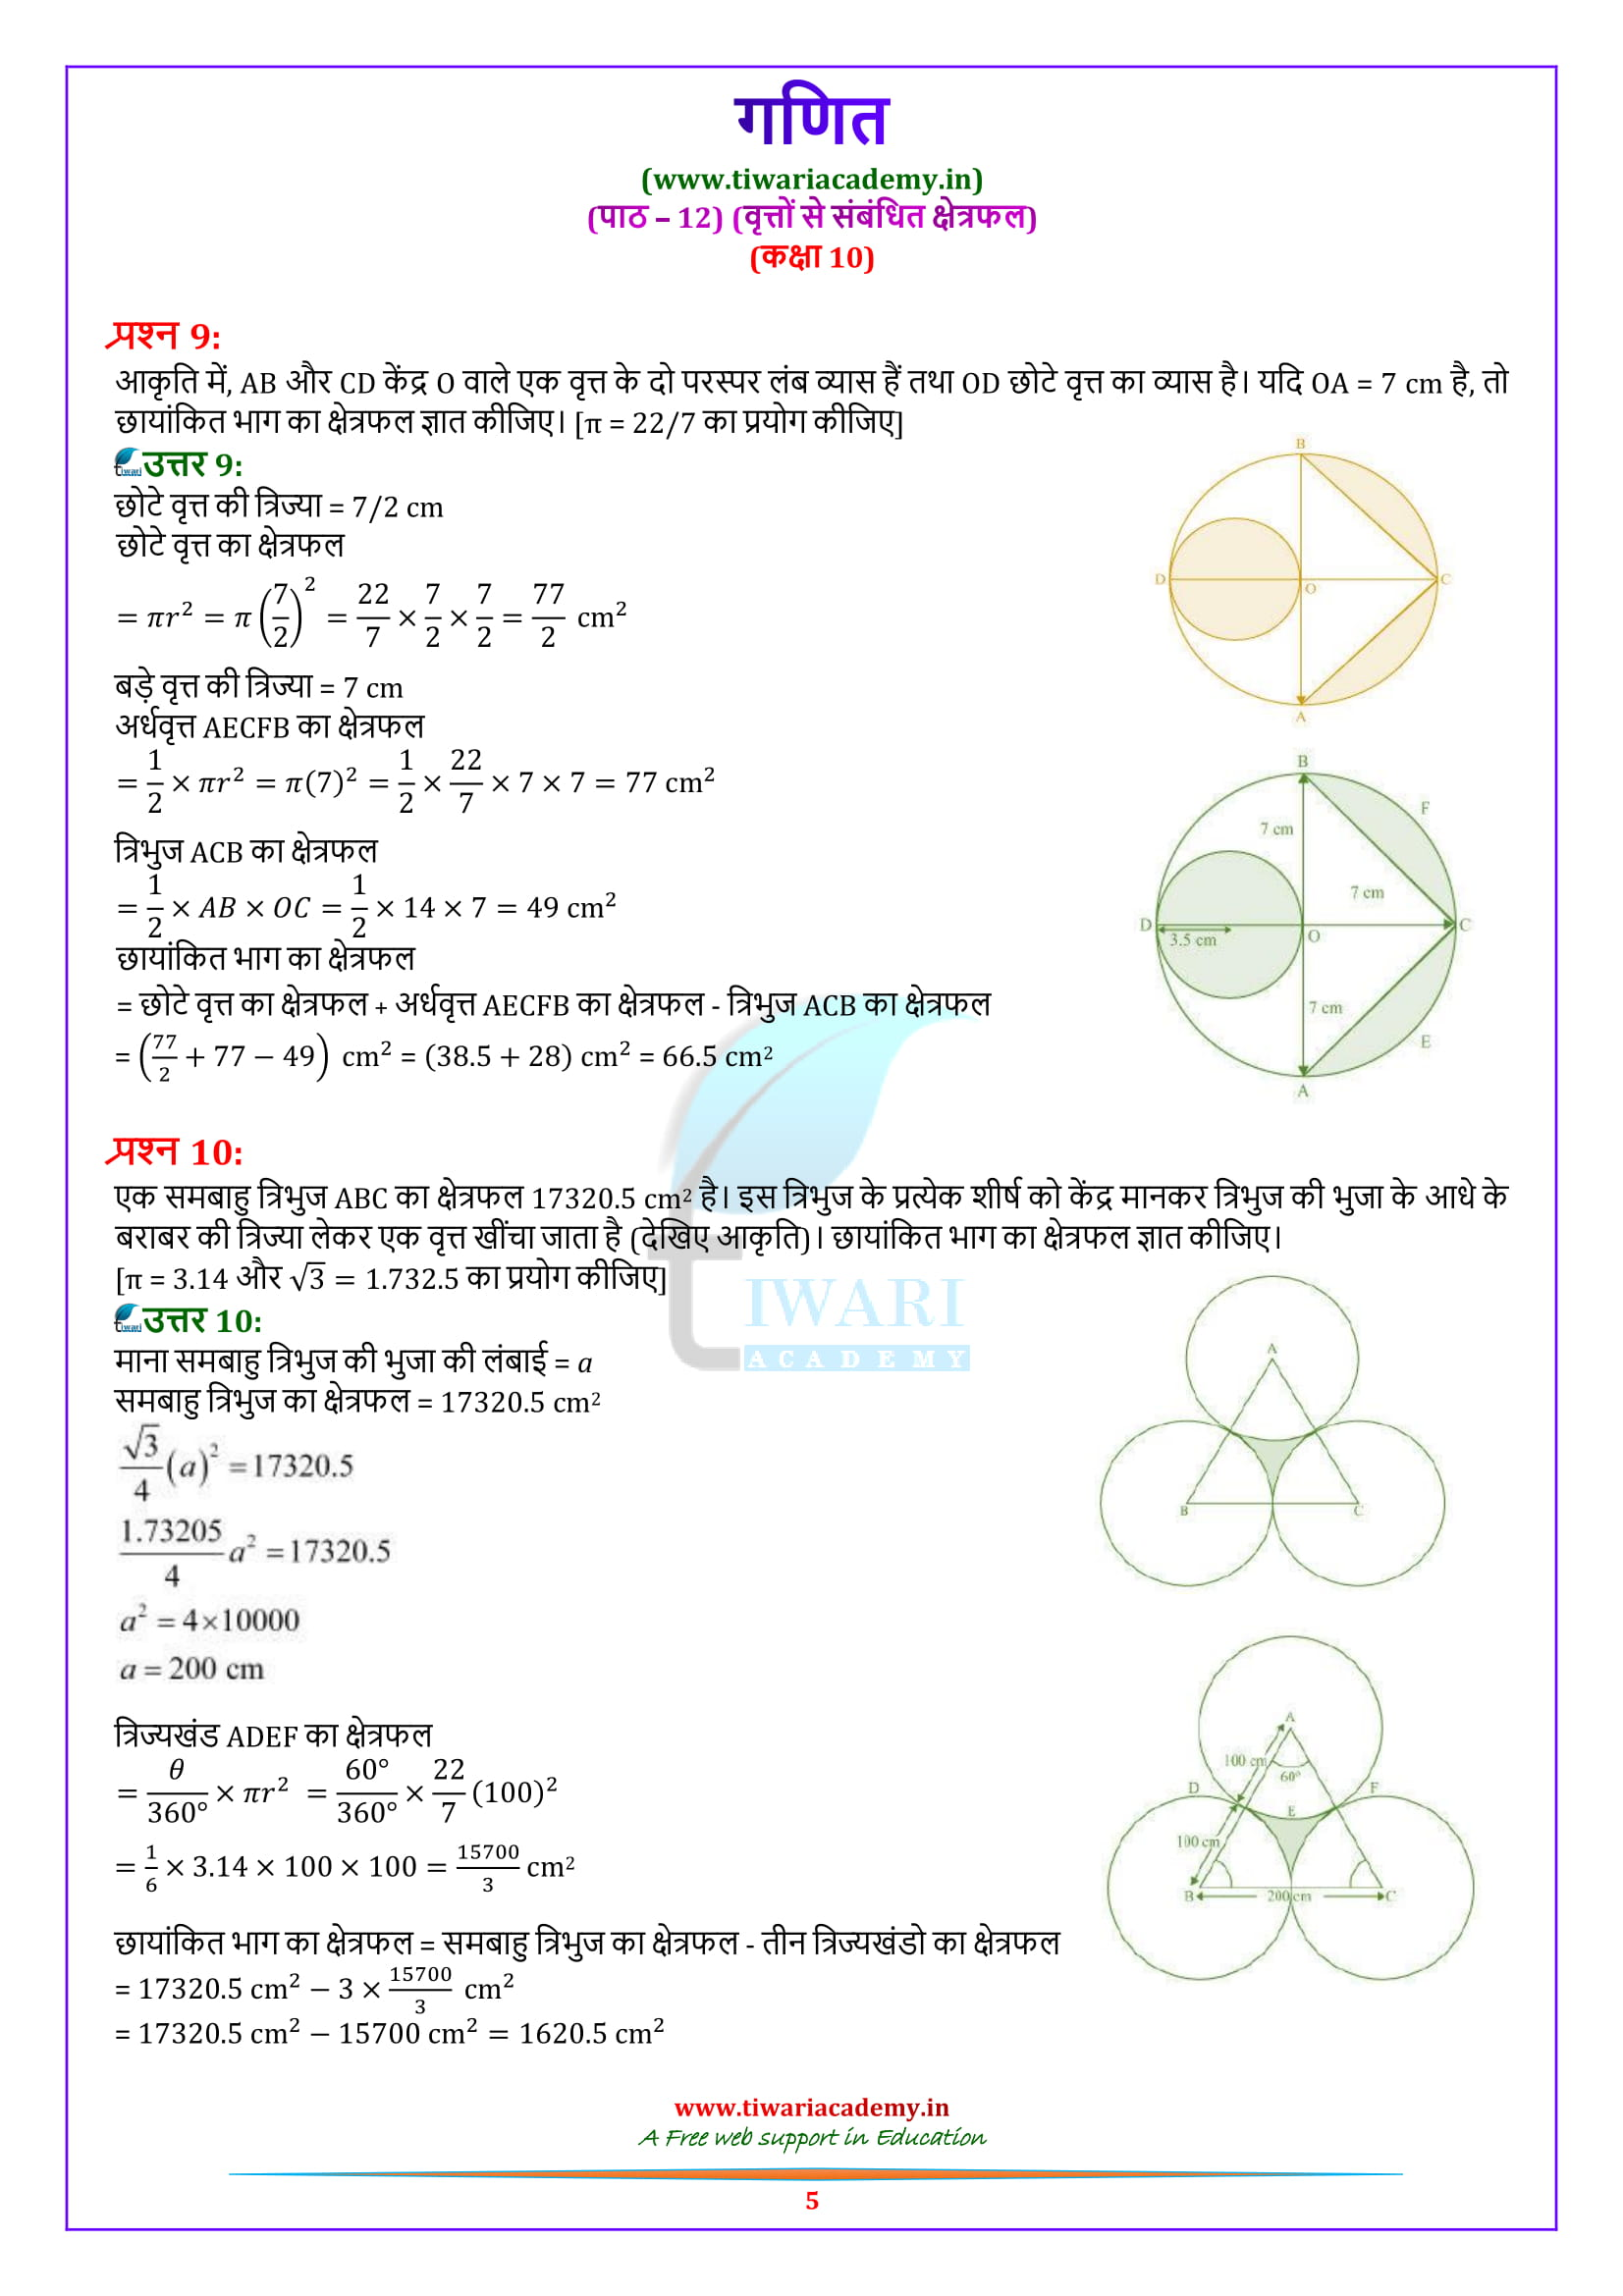 10 Maths Exercise 12.3 solutions question 7, 8, 9, 10, 11, 12